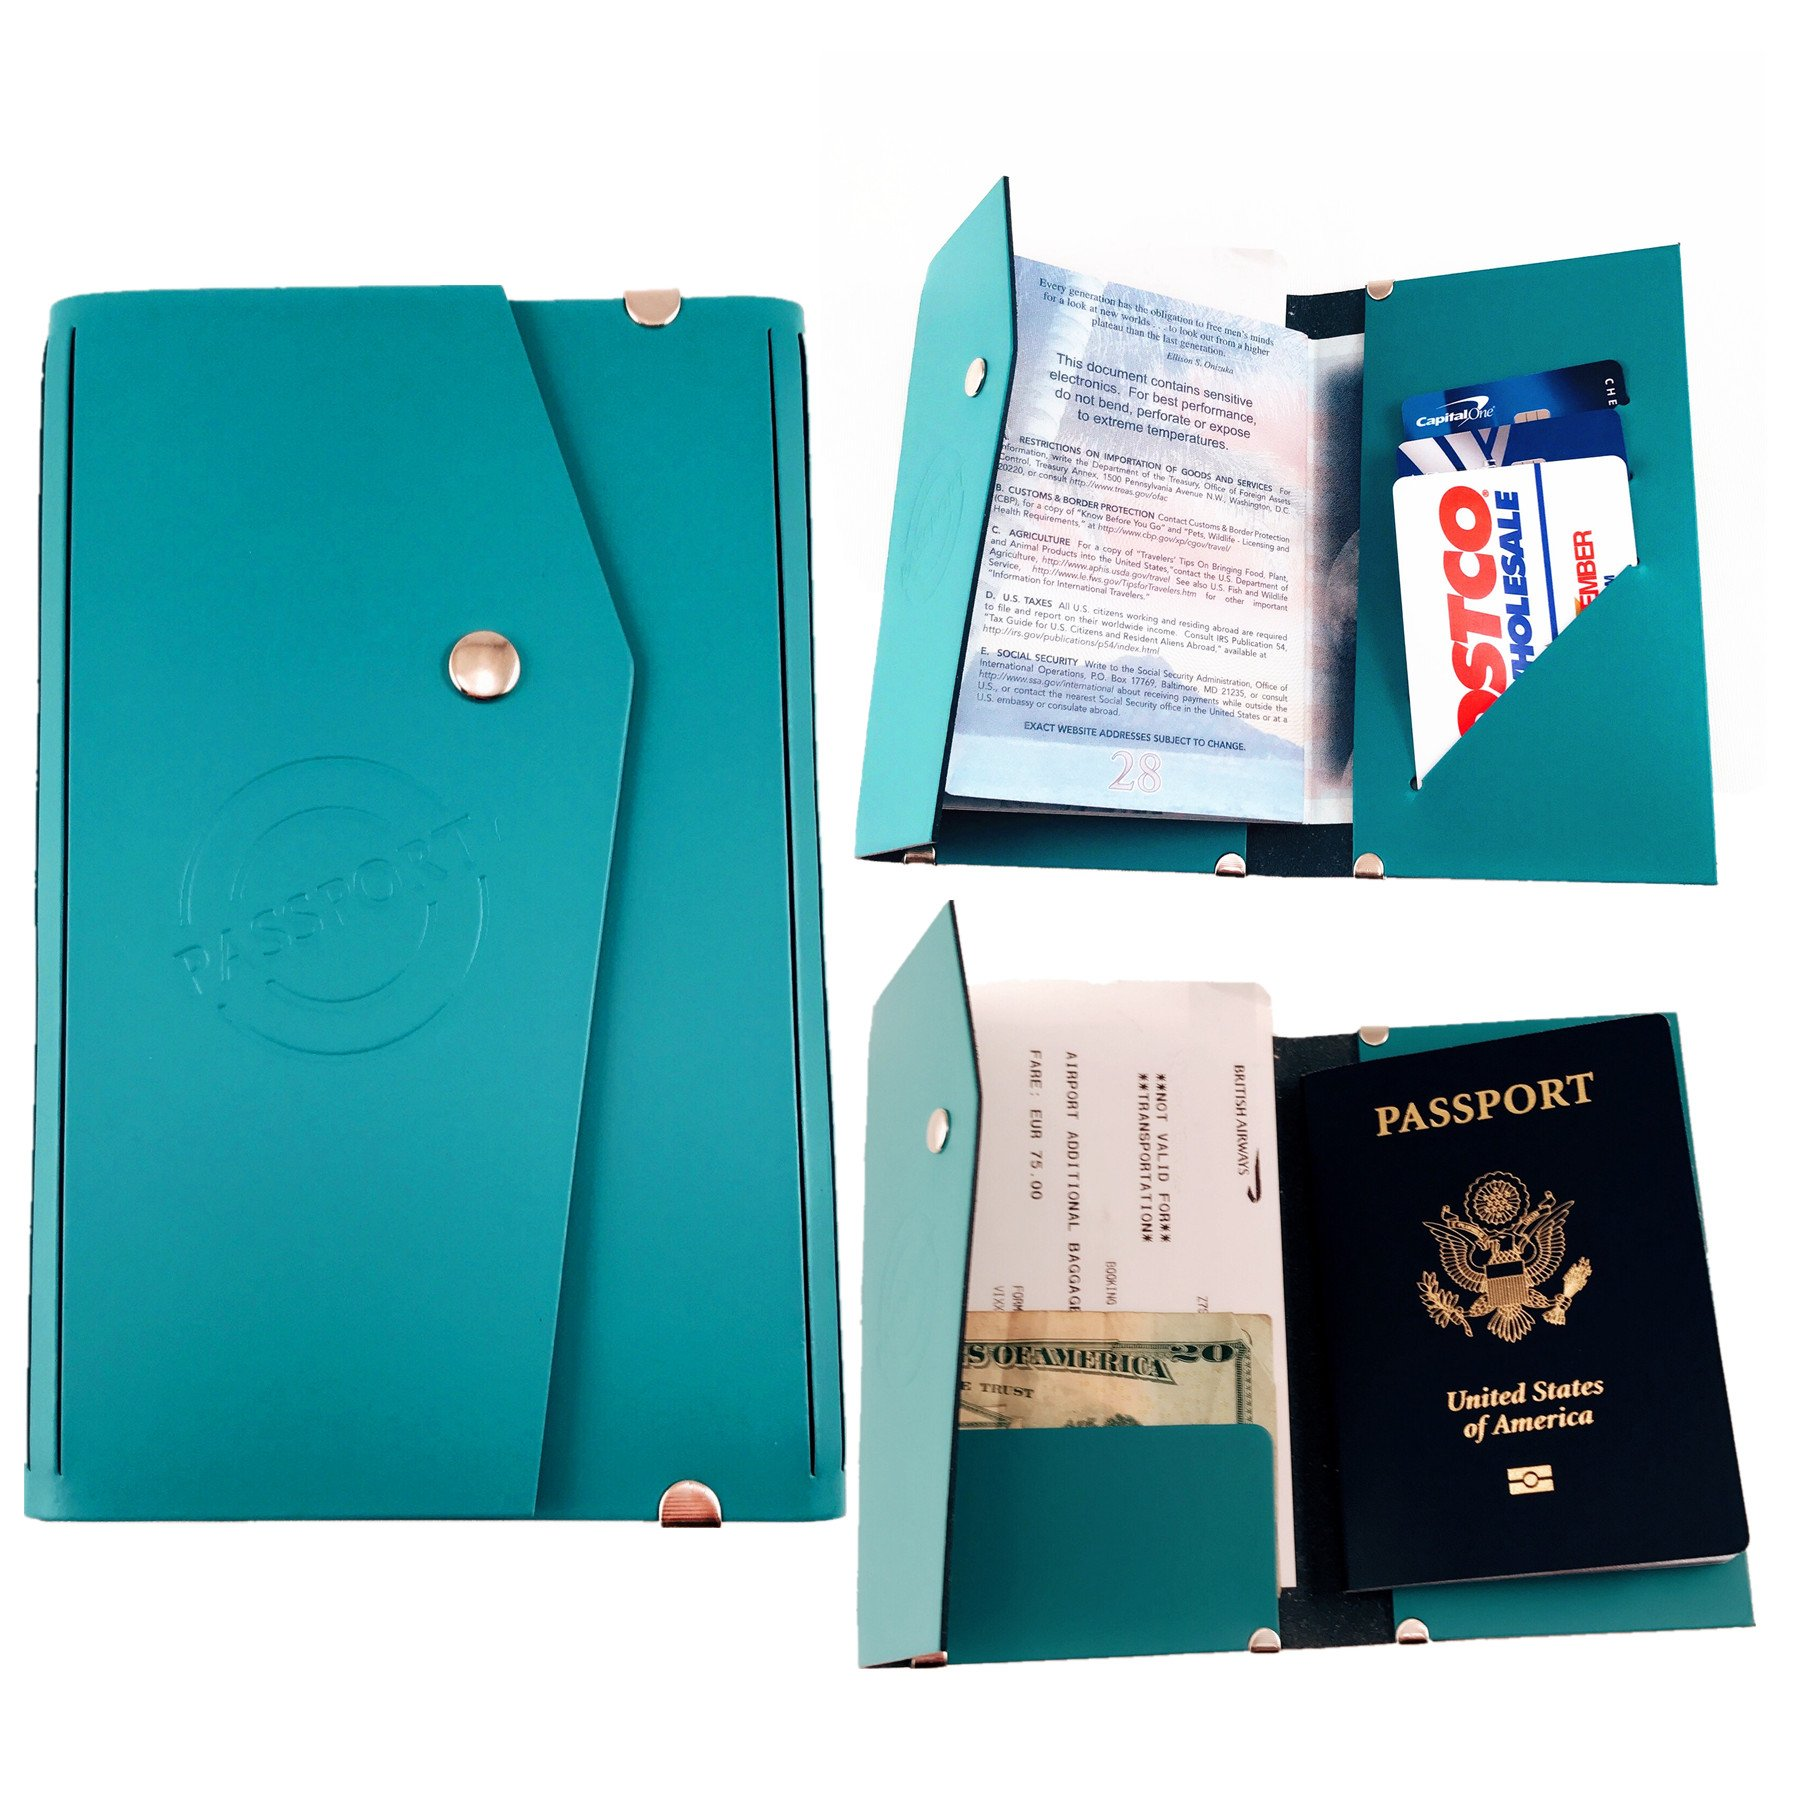 Luxury Leather Travel Passport Cover Holder Wallet with 3 Credit Card Slots Boarding Pass Holder by iSee Case Made in Italy (Blue)